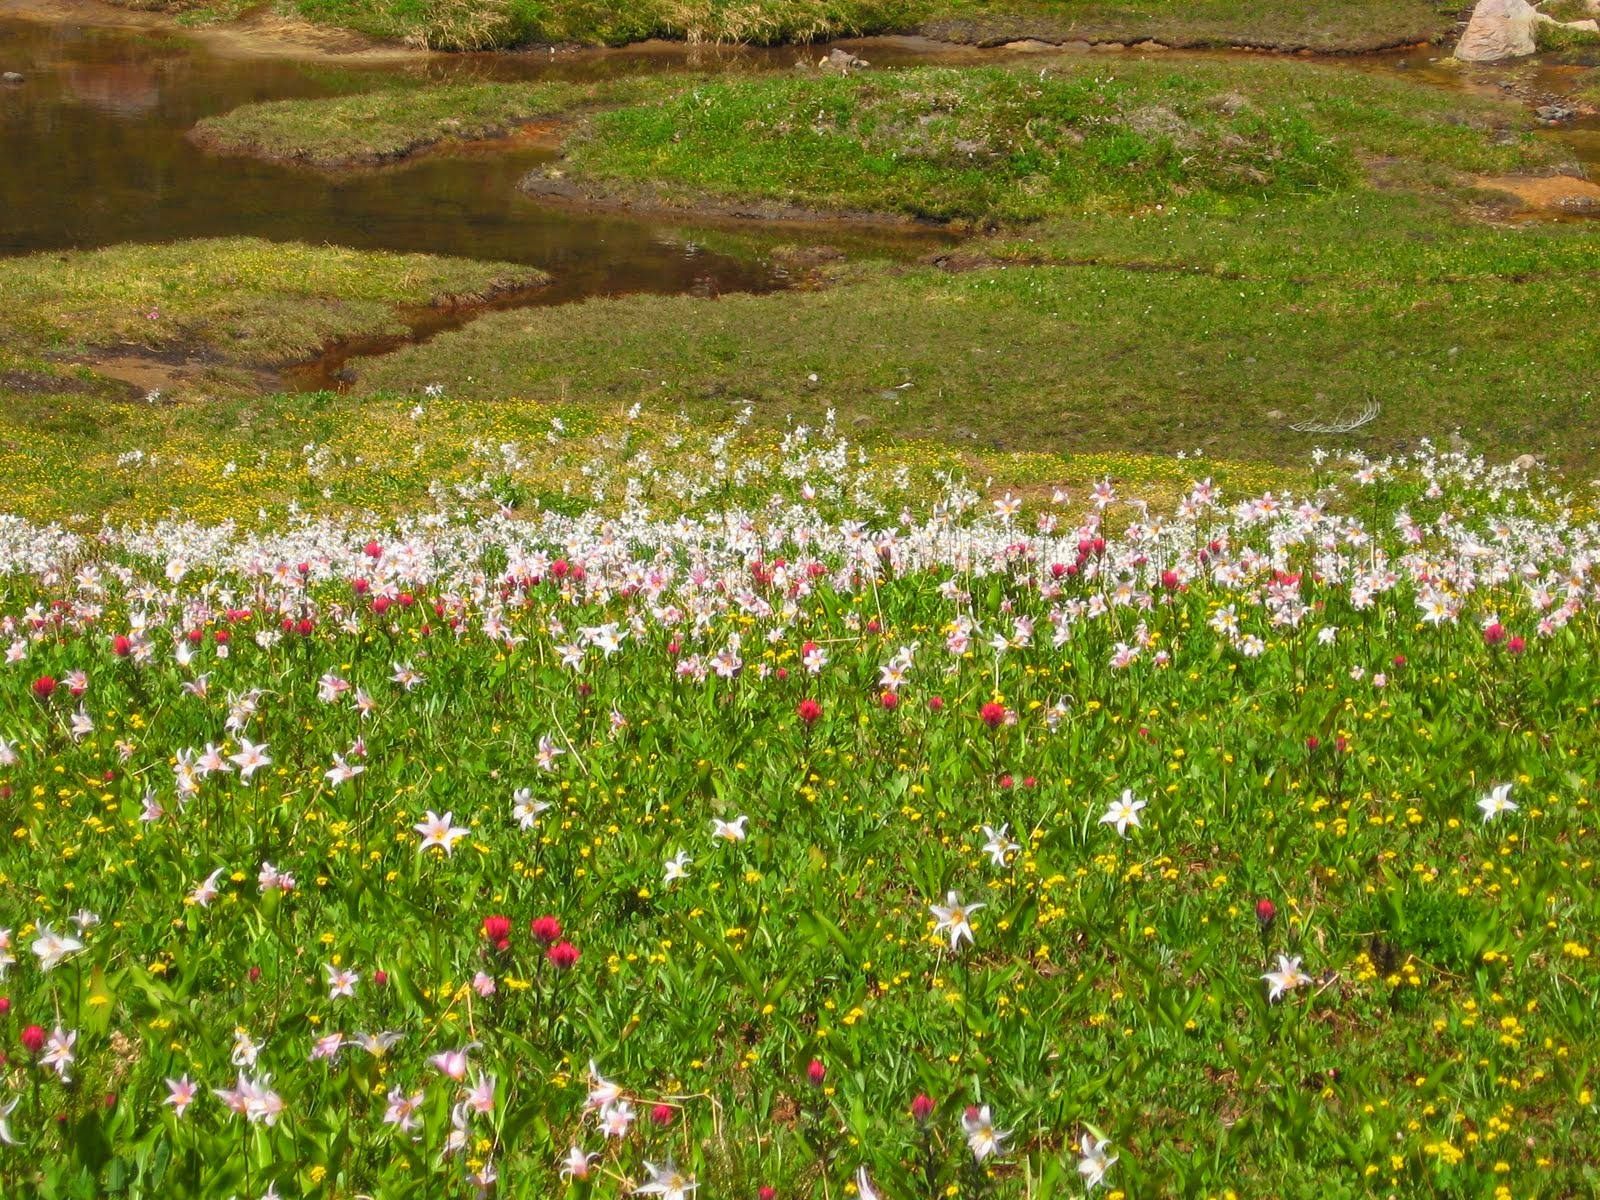 Lots of white, magenta and yellow wildflowers in a green meadow